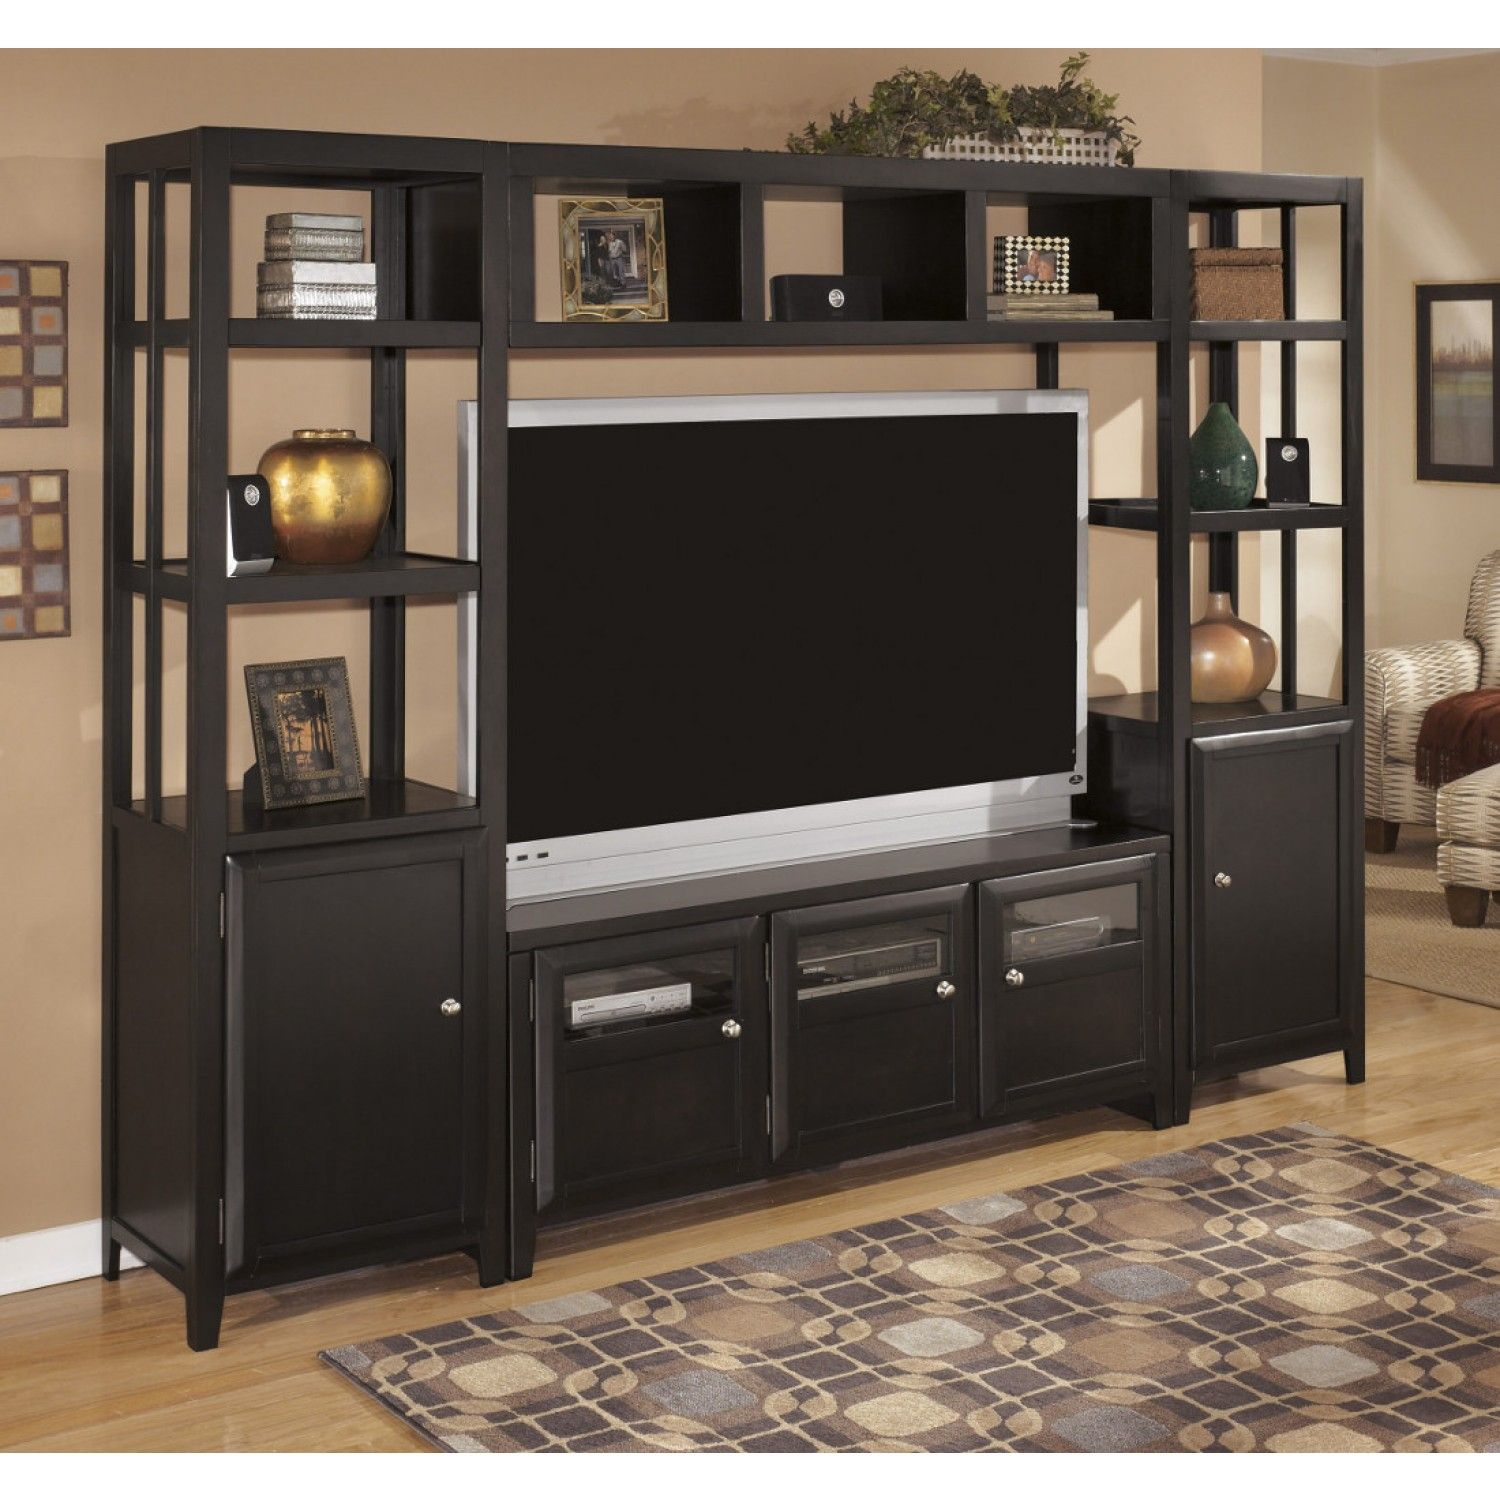 design fireplace wall ashley bluetooth speaker entertainment center insert by products small unit w furniture